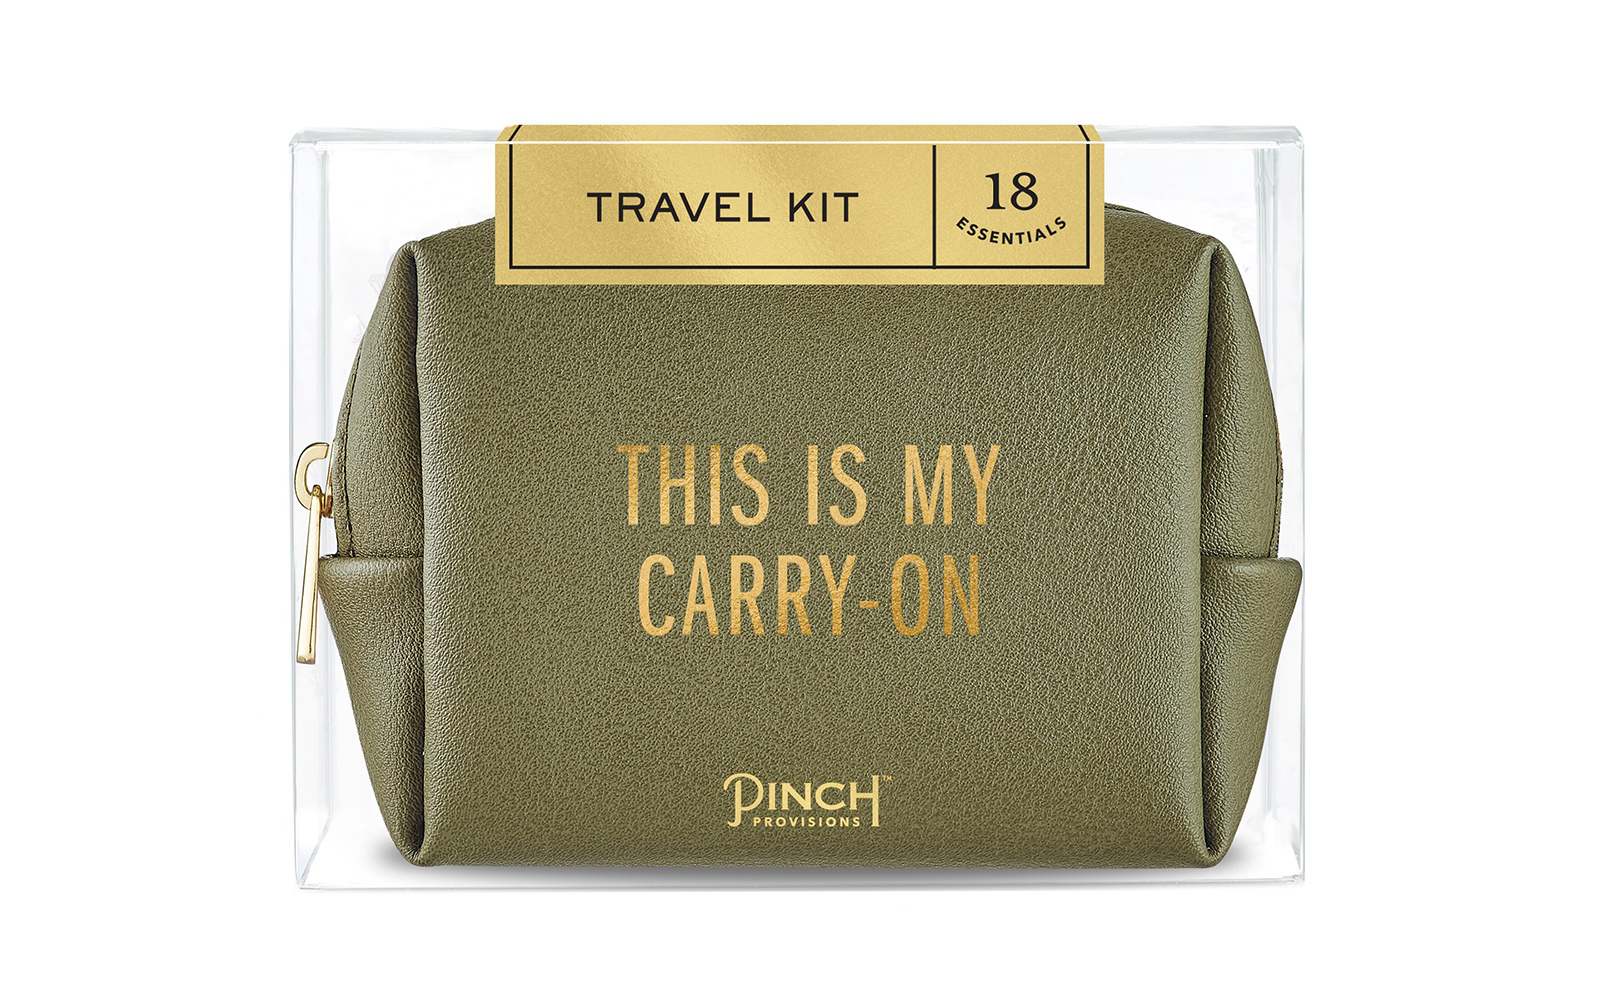 Pinch Provisions Travel Kit